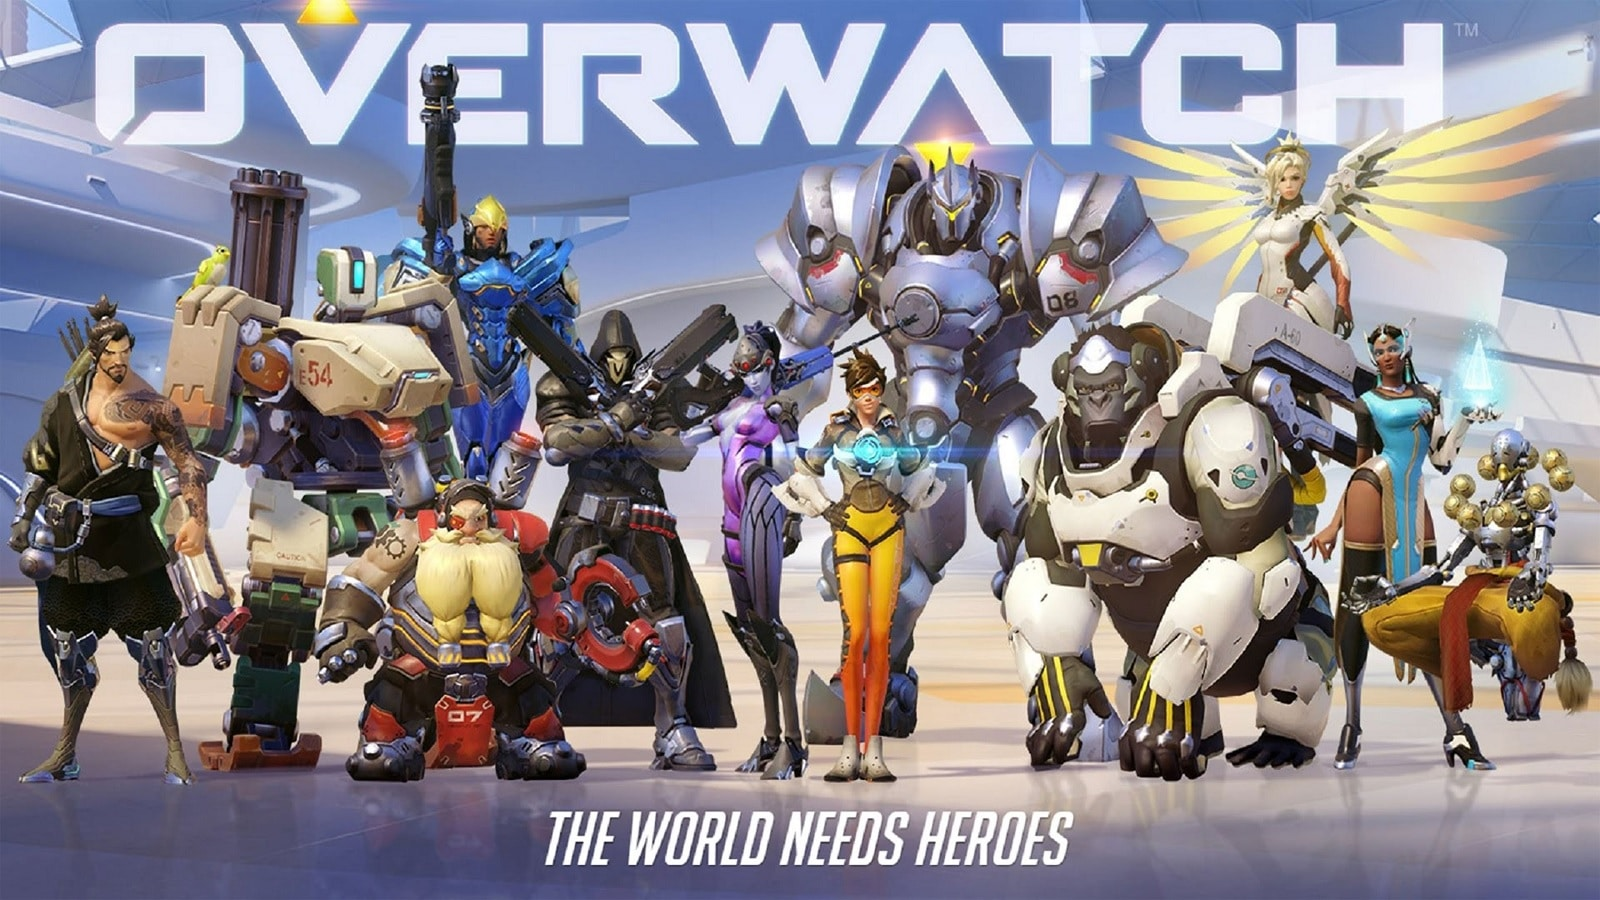 overwatch characters against light background